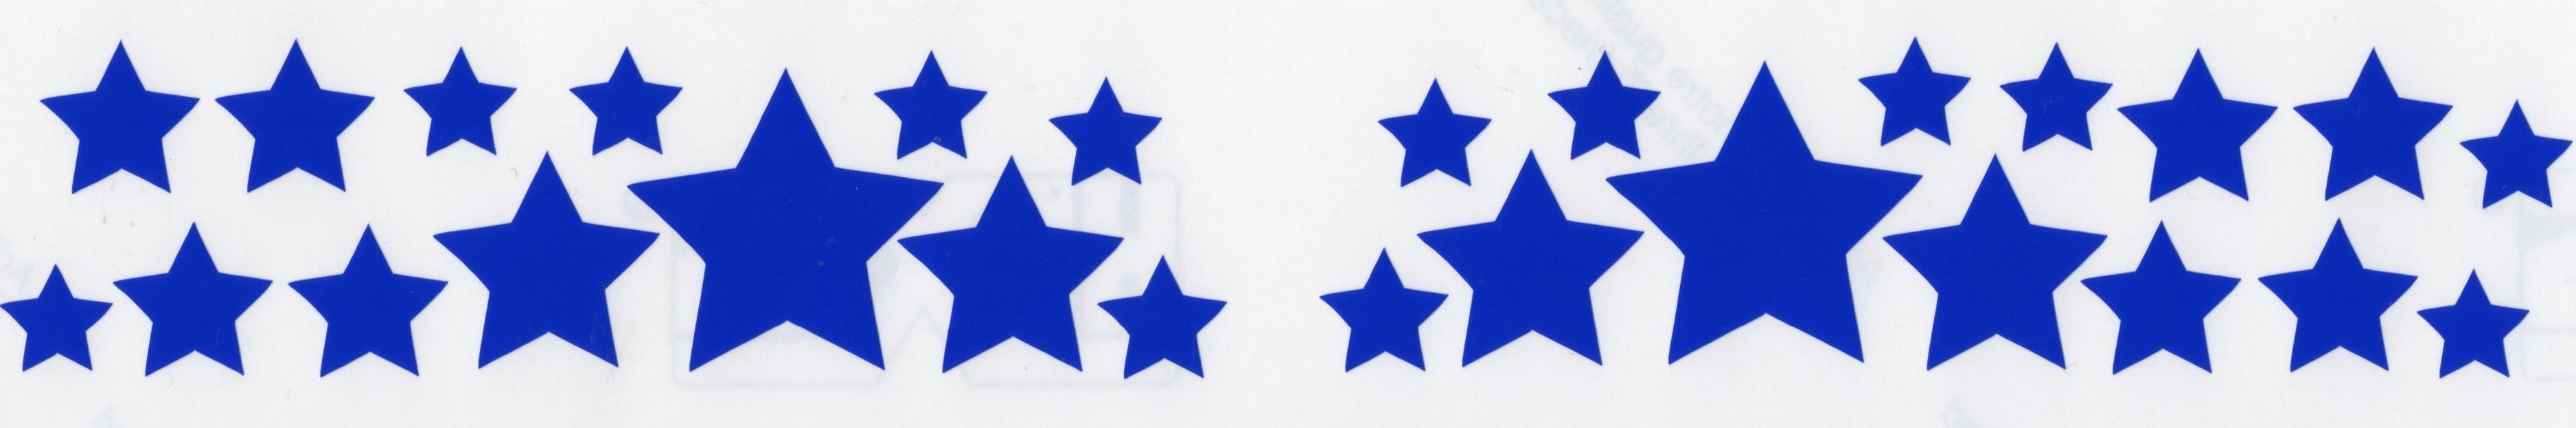 5-point-thin-star-car-bicycle-stickers-decals.jpg